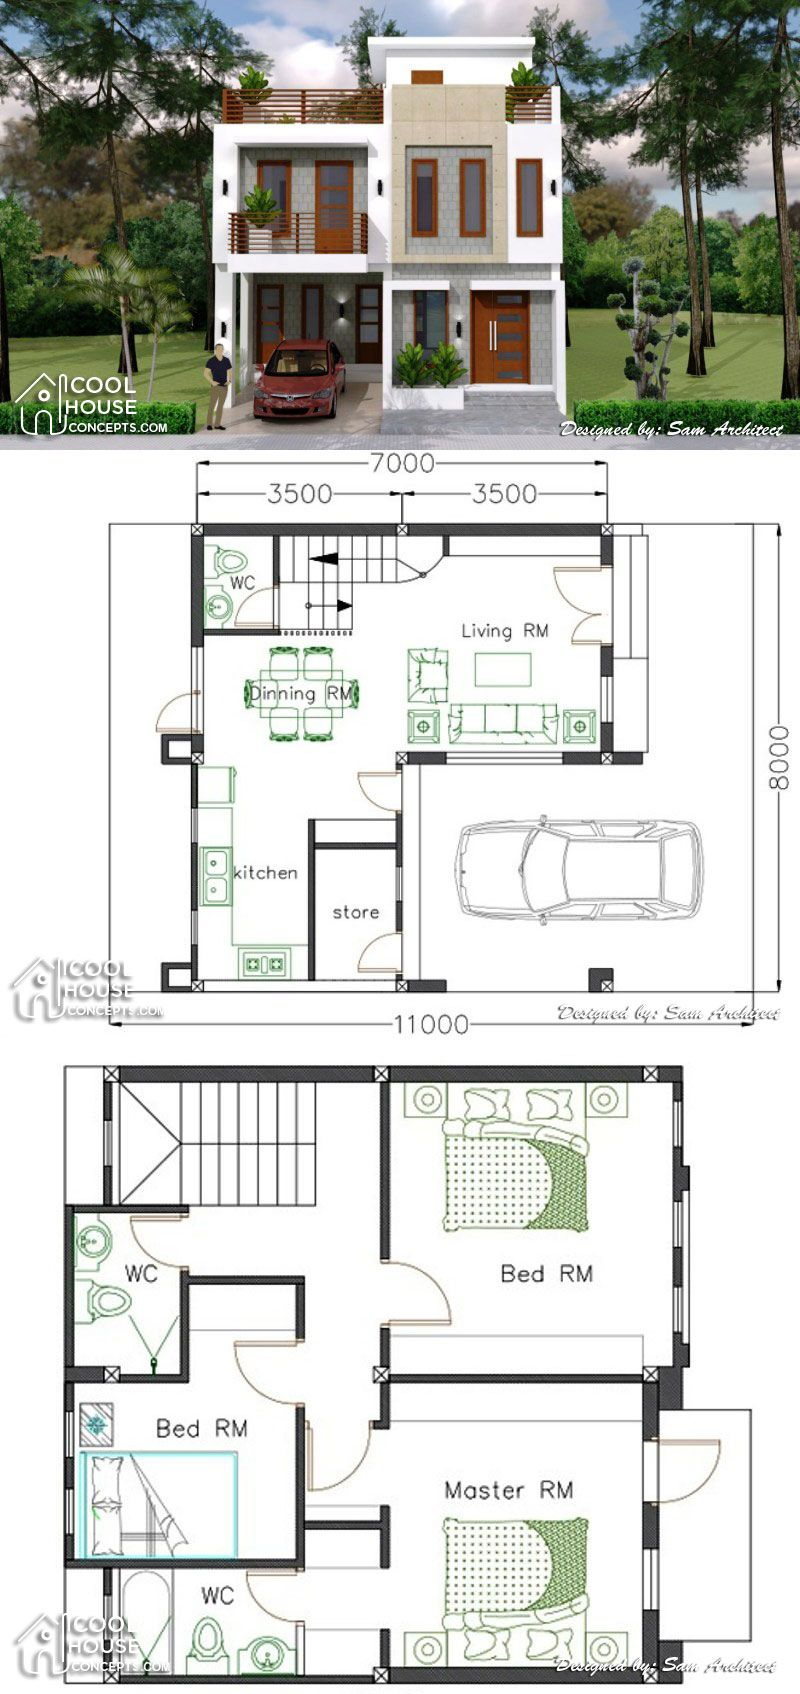 Single Attached Two Storey Concept With 3 Bedrooms Two Story House Design Simple House Design 3 Storey House Design